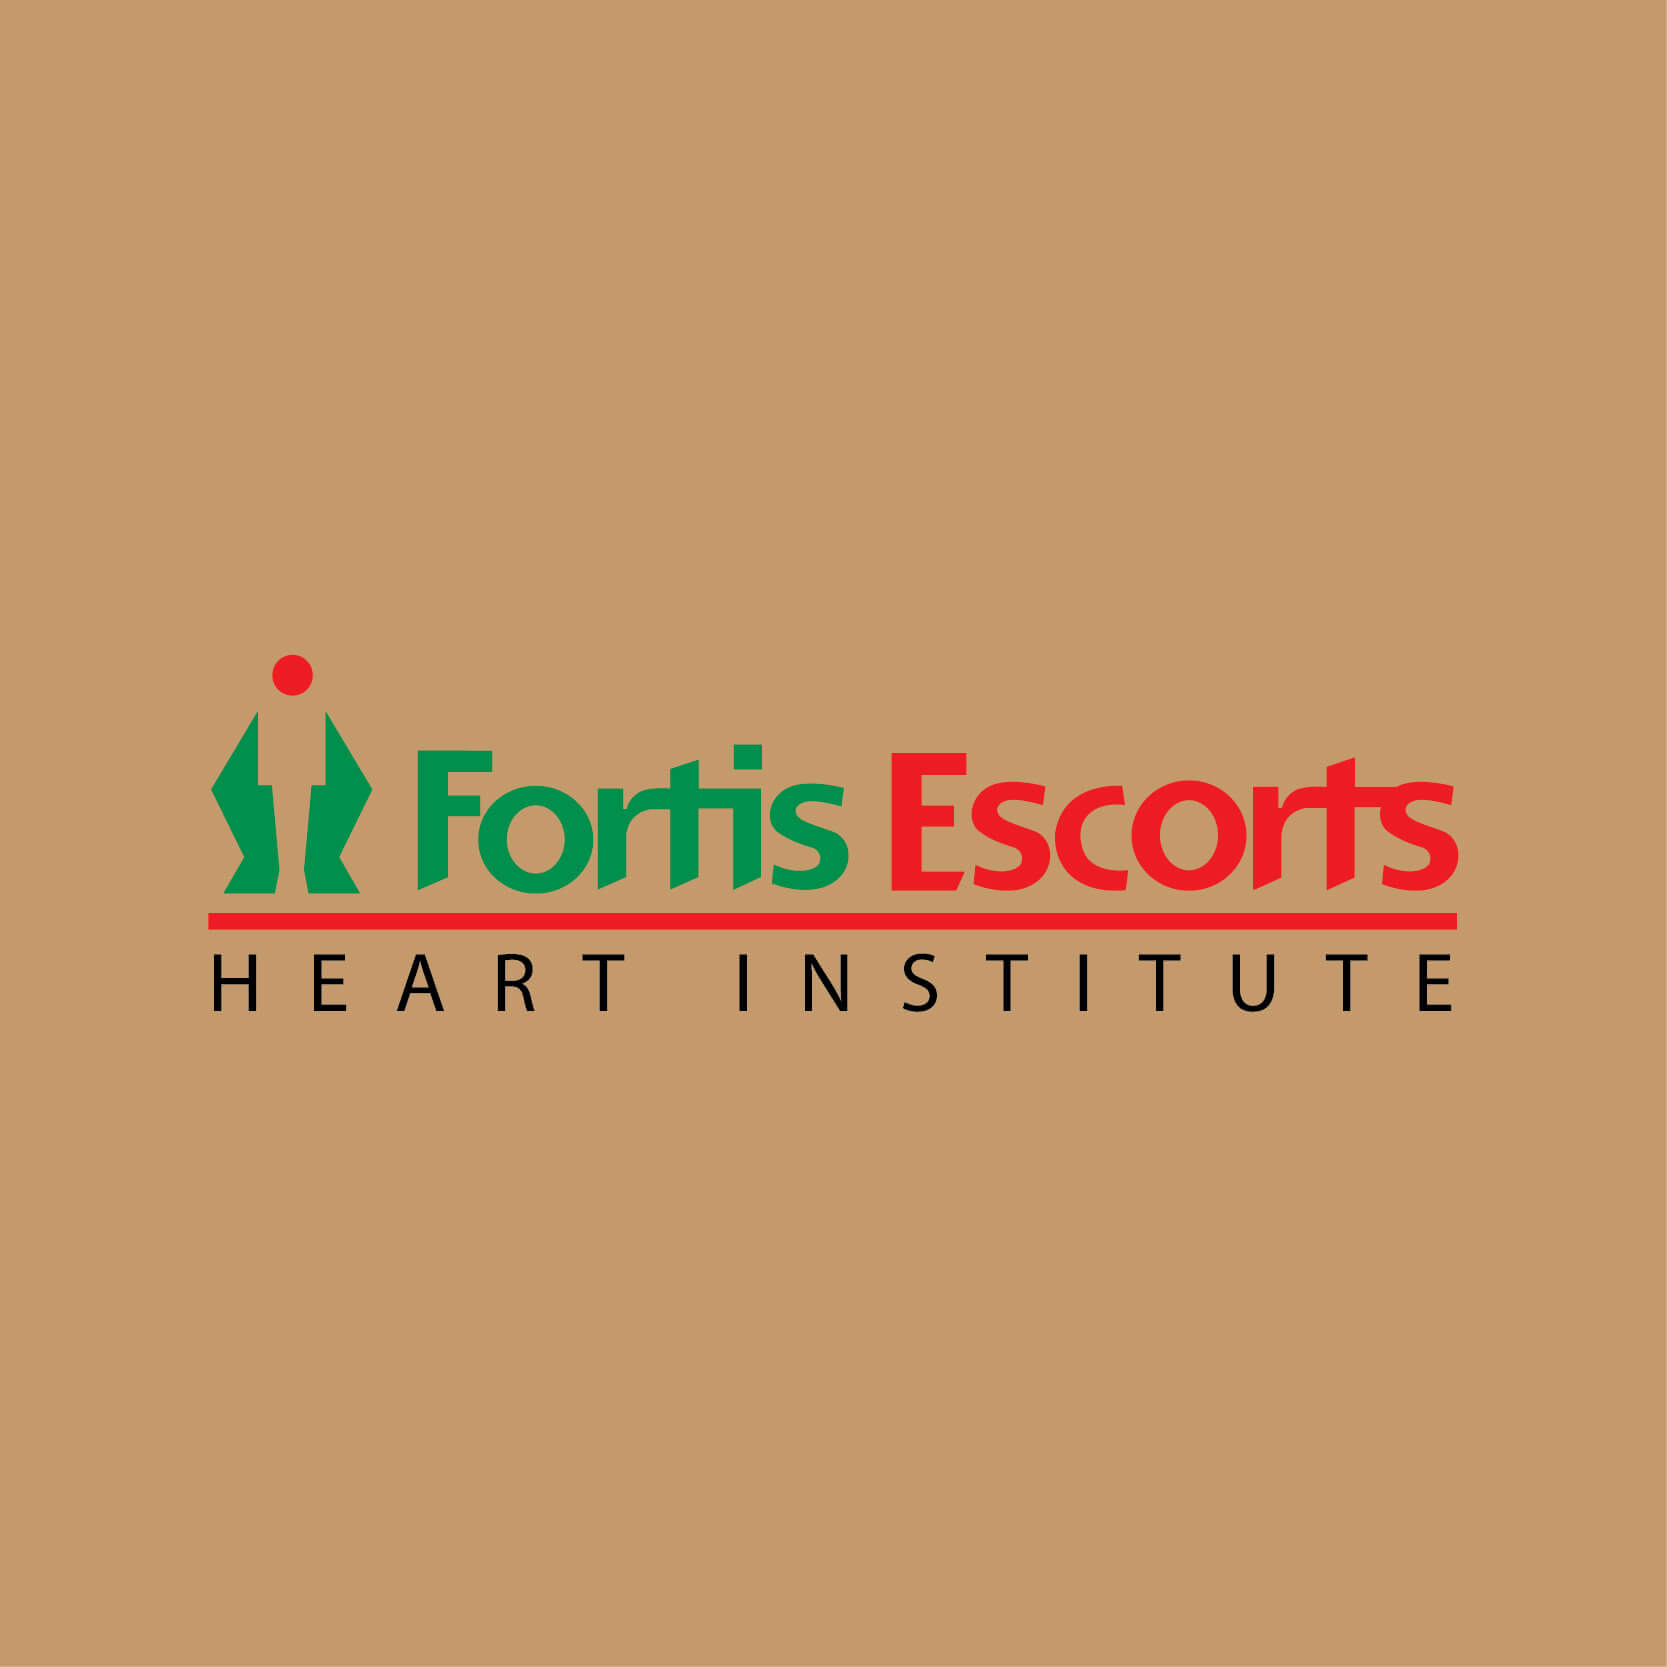 DTC-Clients-Served-Logo-Fortis Escorts